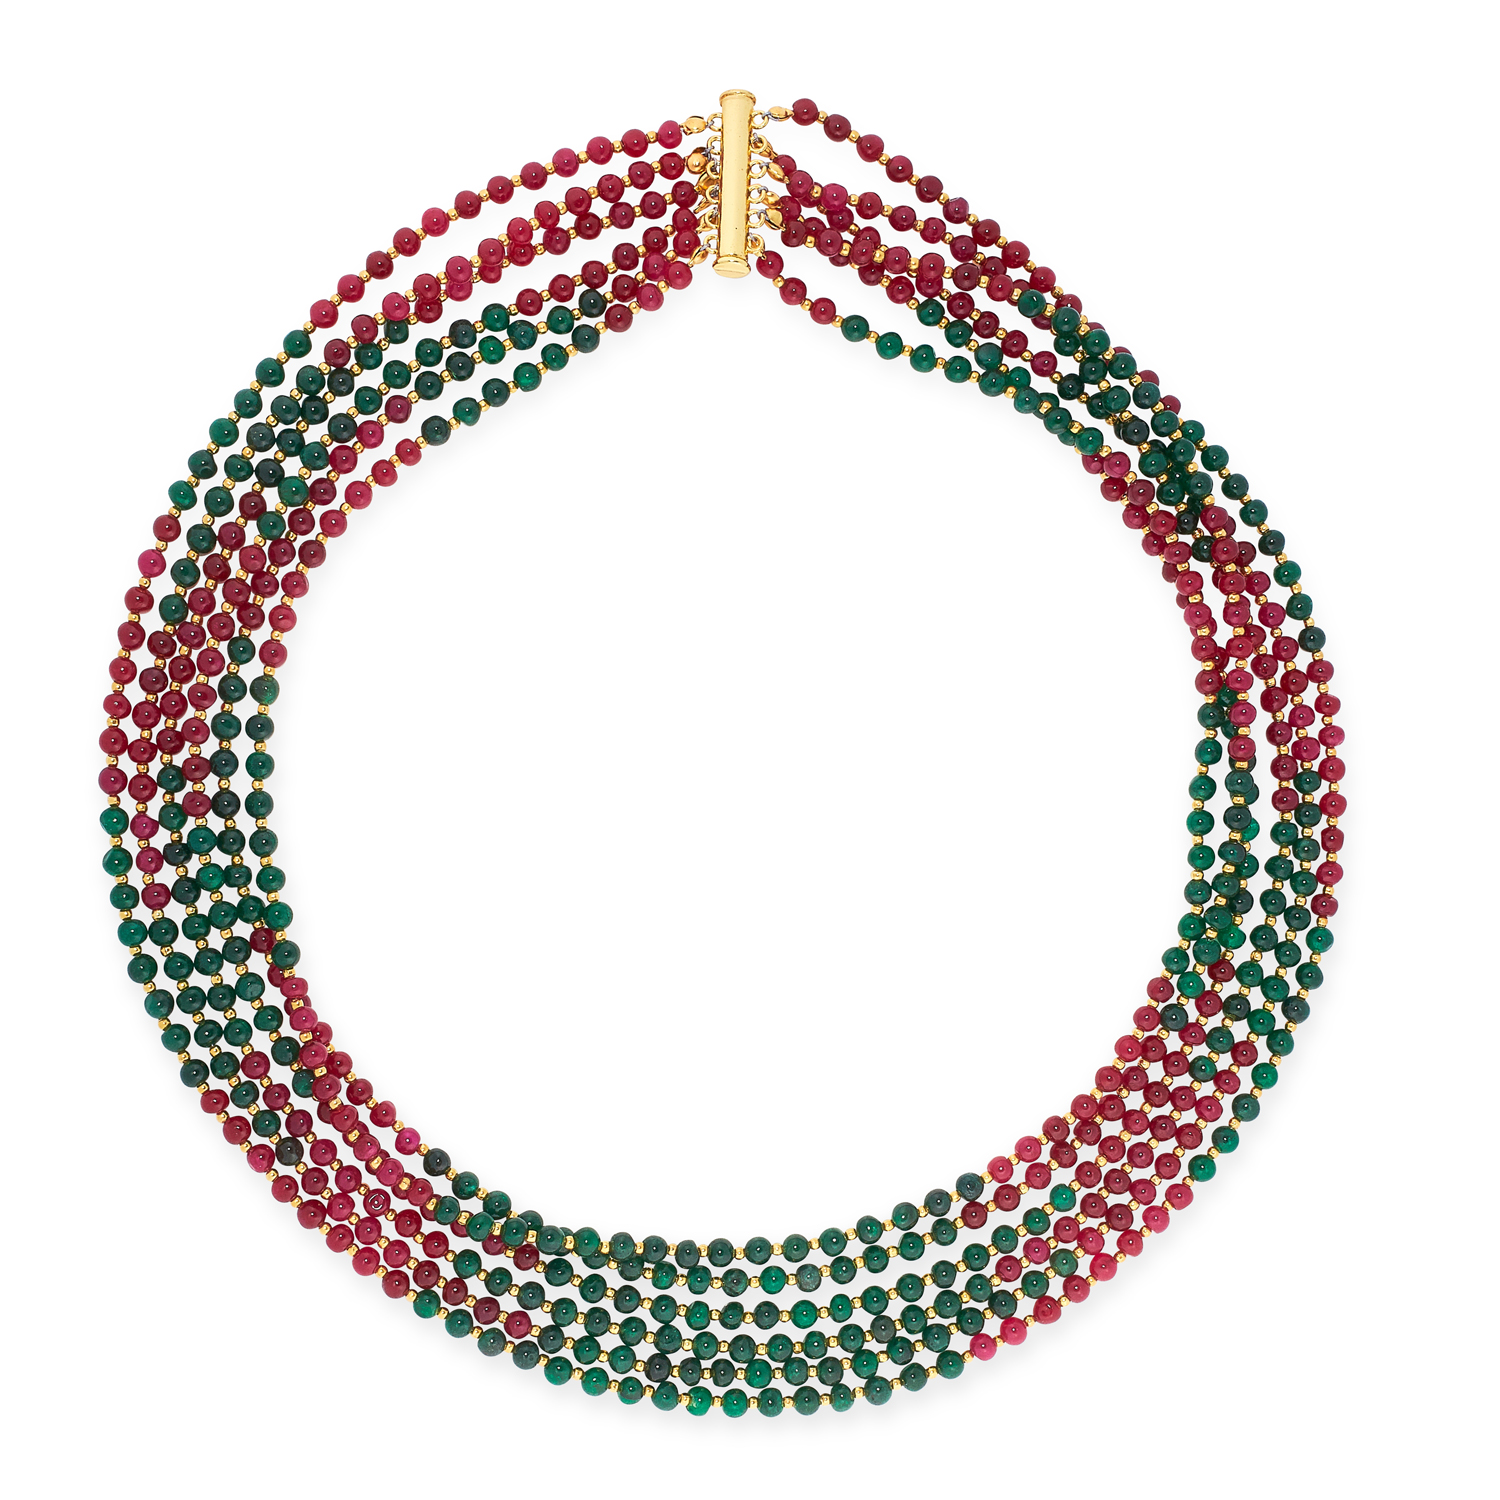 A MIXED LOT OF GEMSTONE BEAD NECKLACES, EARRINGS AND BRACELETS including jade, emerald, lapis - Image 11 of 13